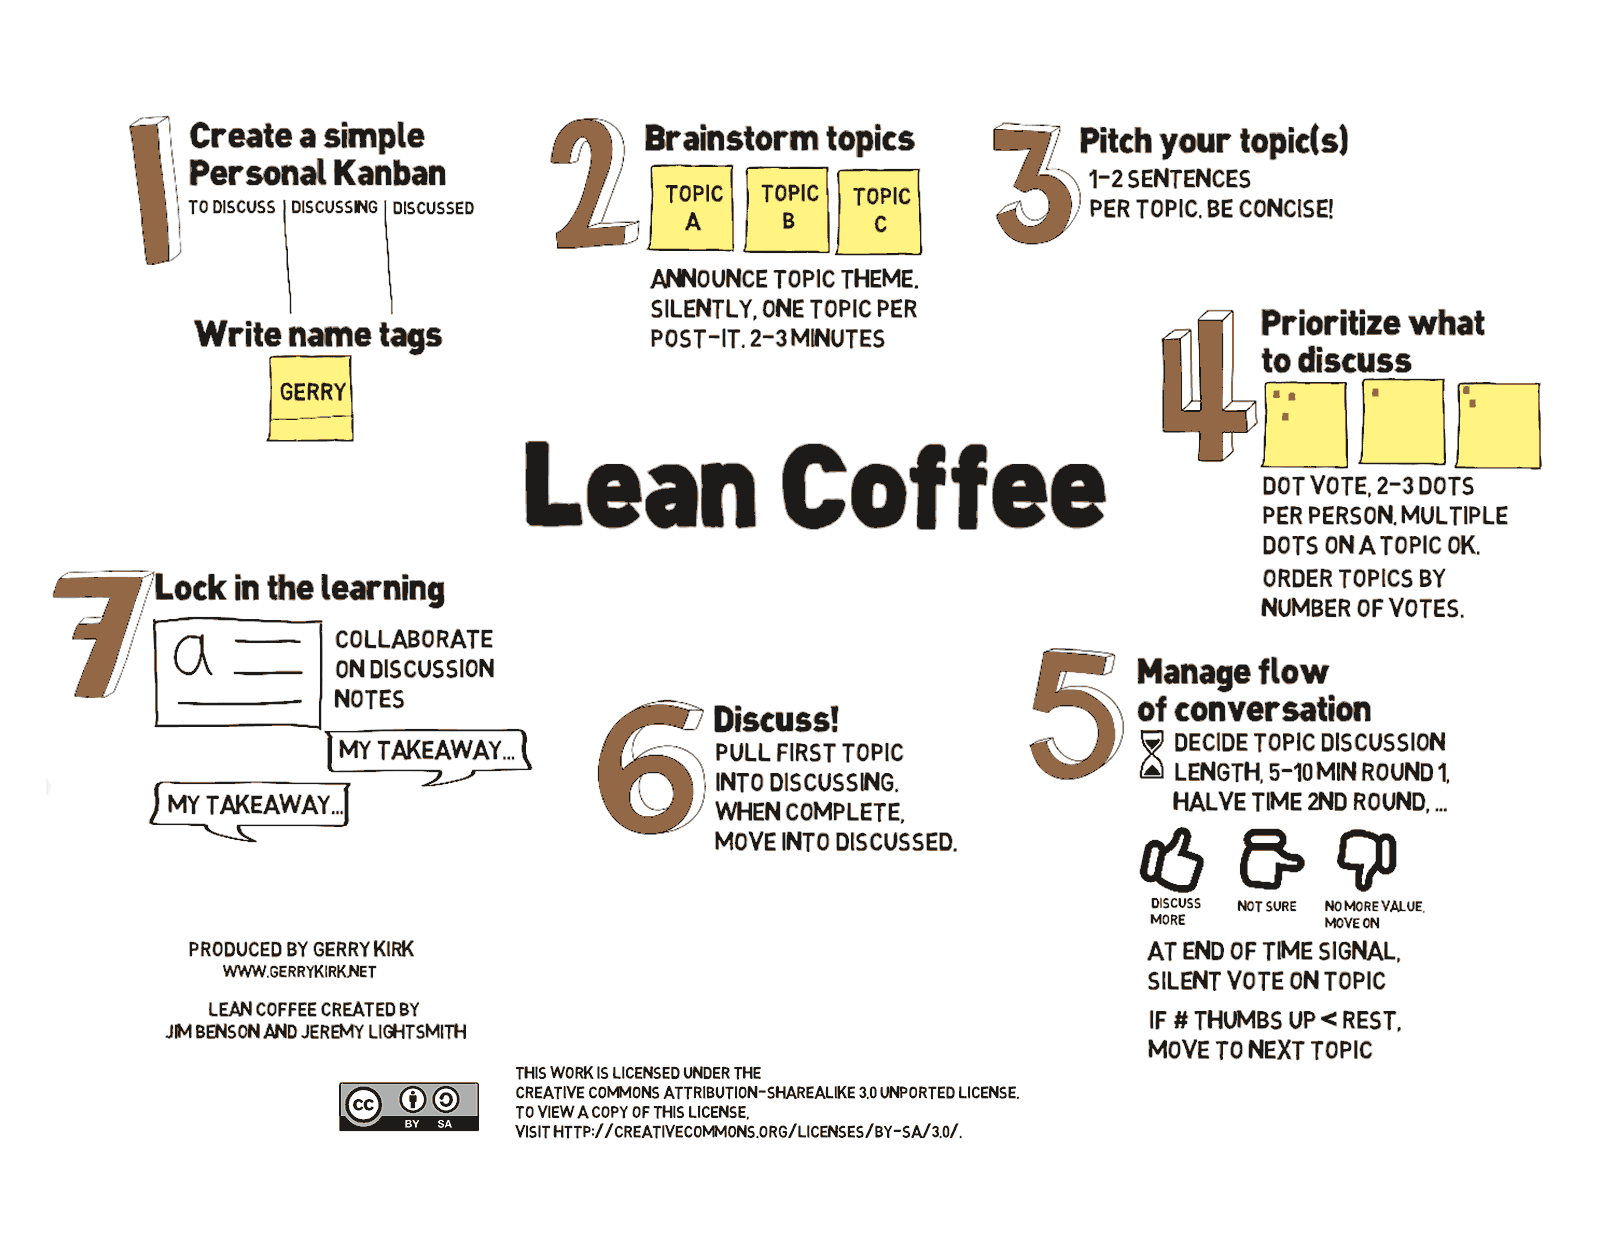 Steps in the Lean Coffee process